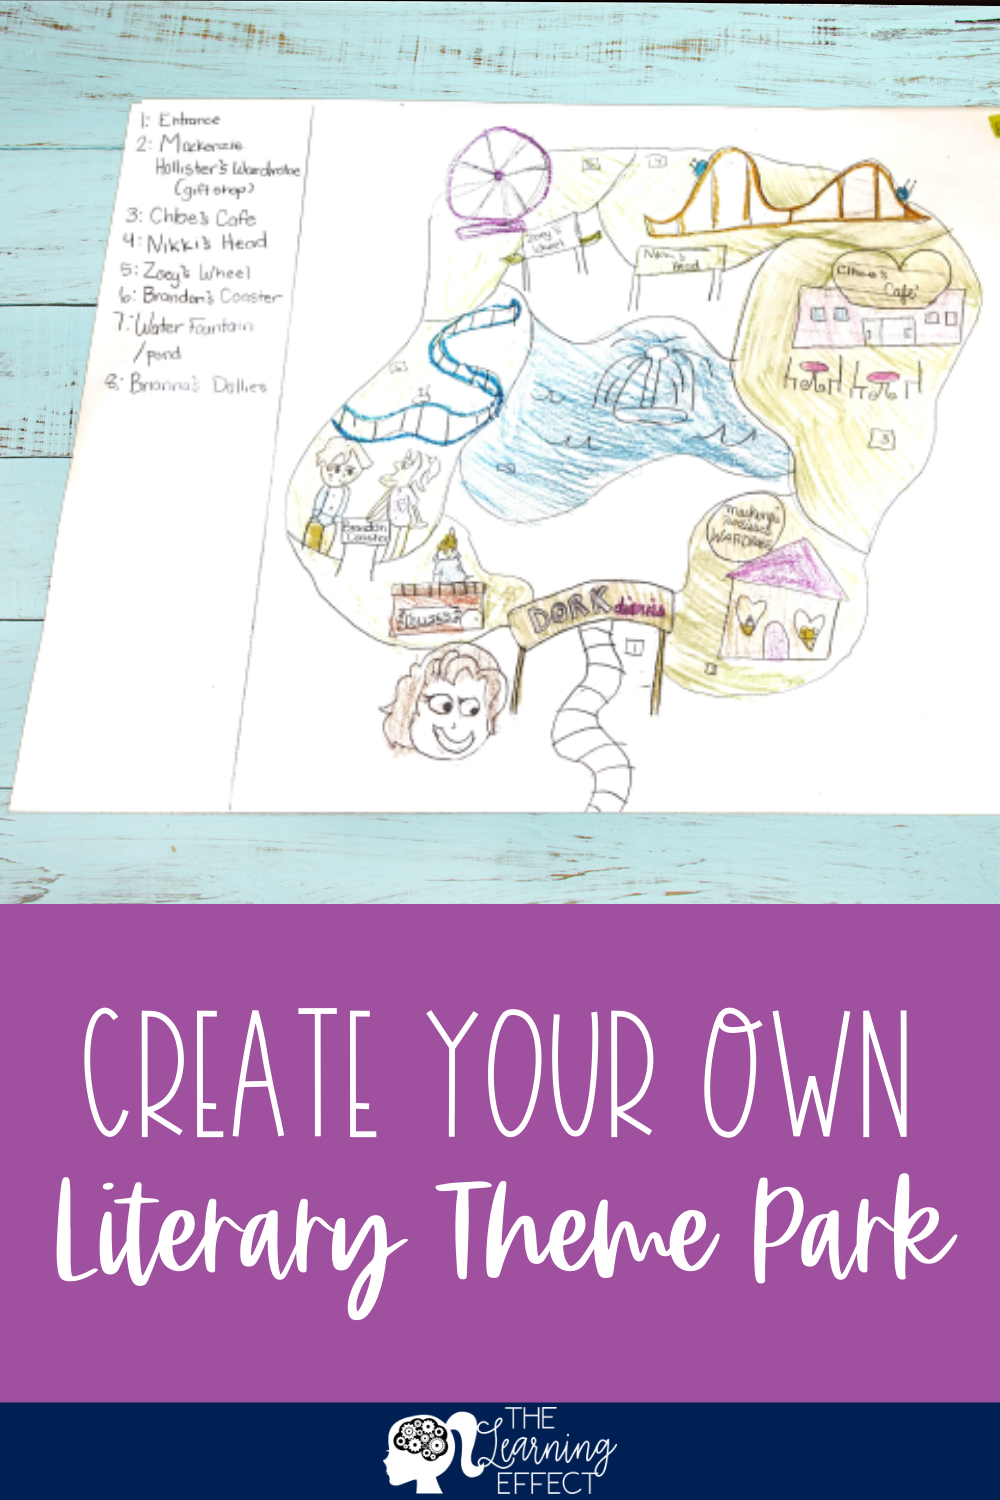 Create Your Own Literary Theme Park Book Project Literary Themes Reading Projects Book Projects